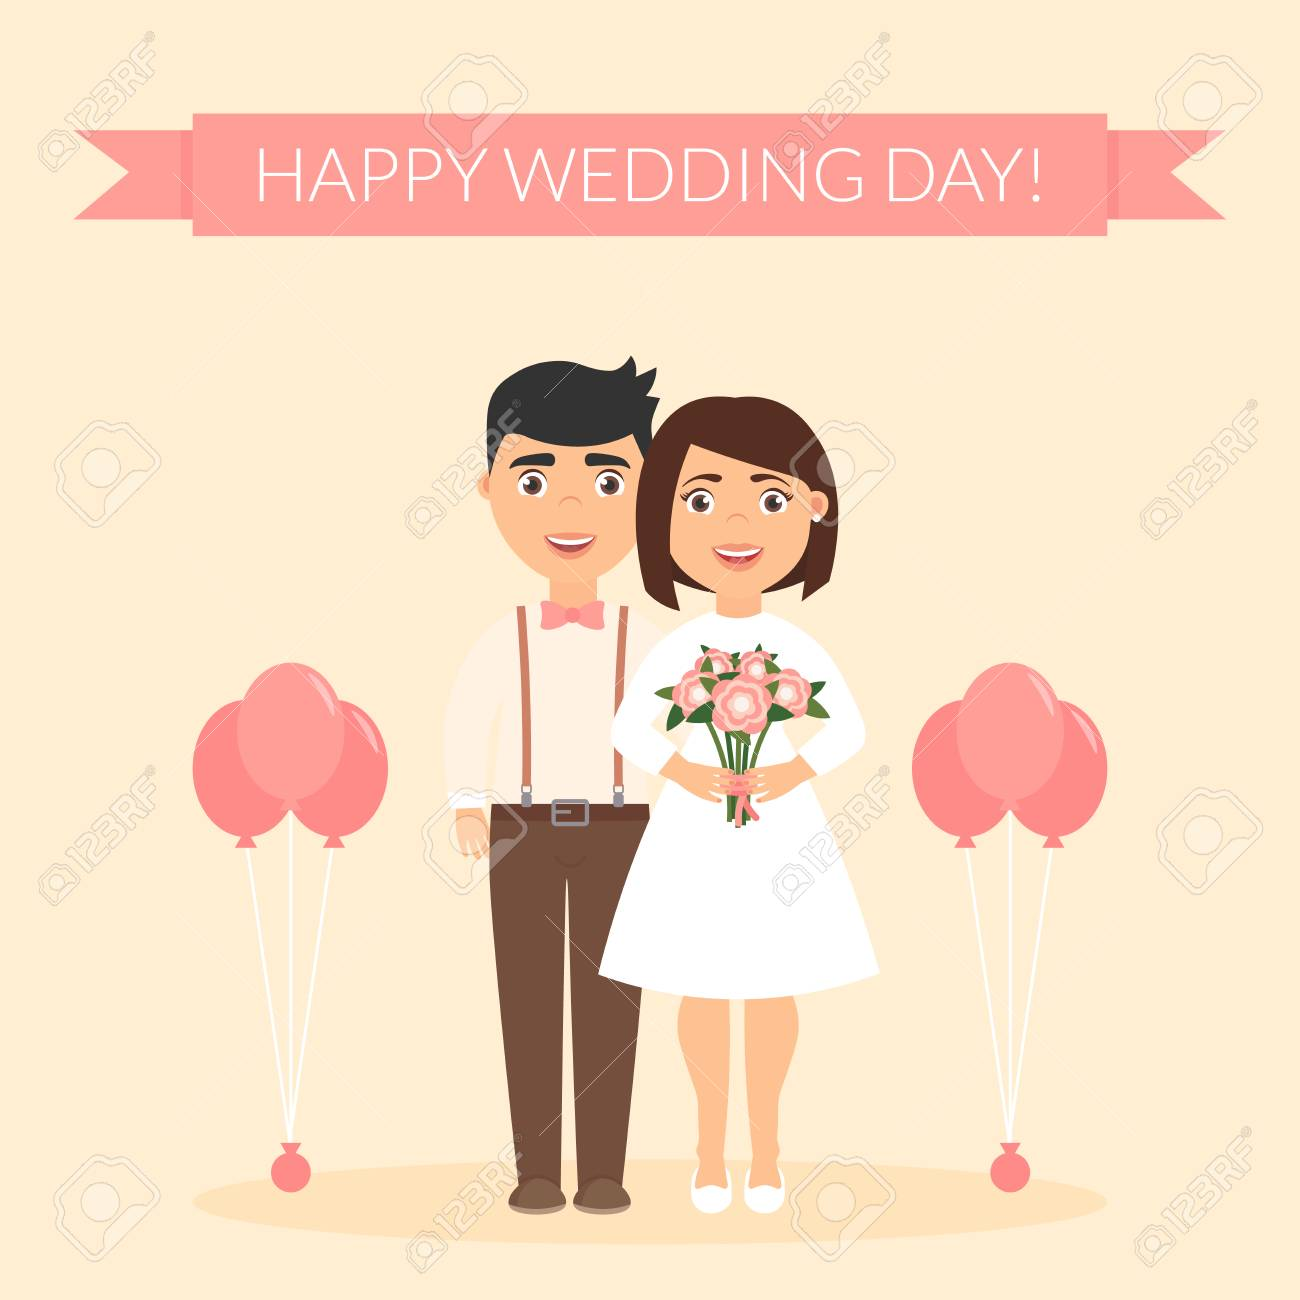 happy wedding day greeting card for newlyweds festive vector